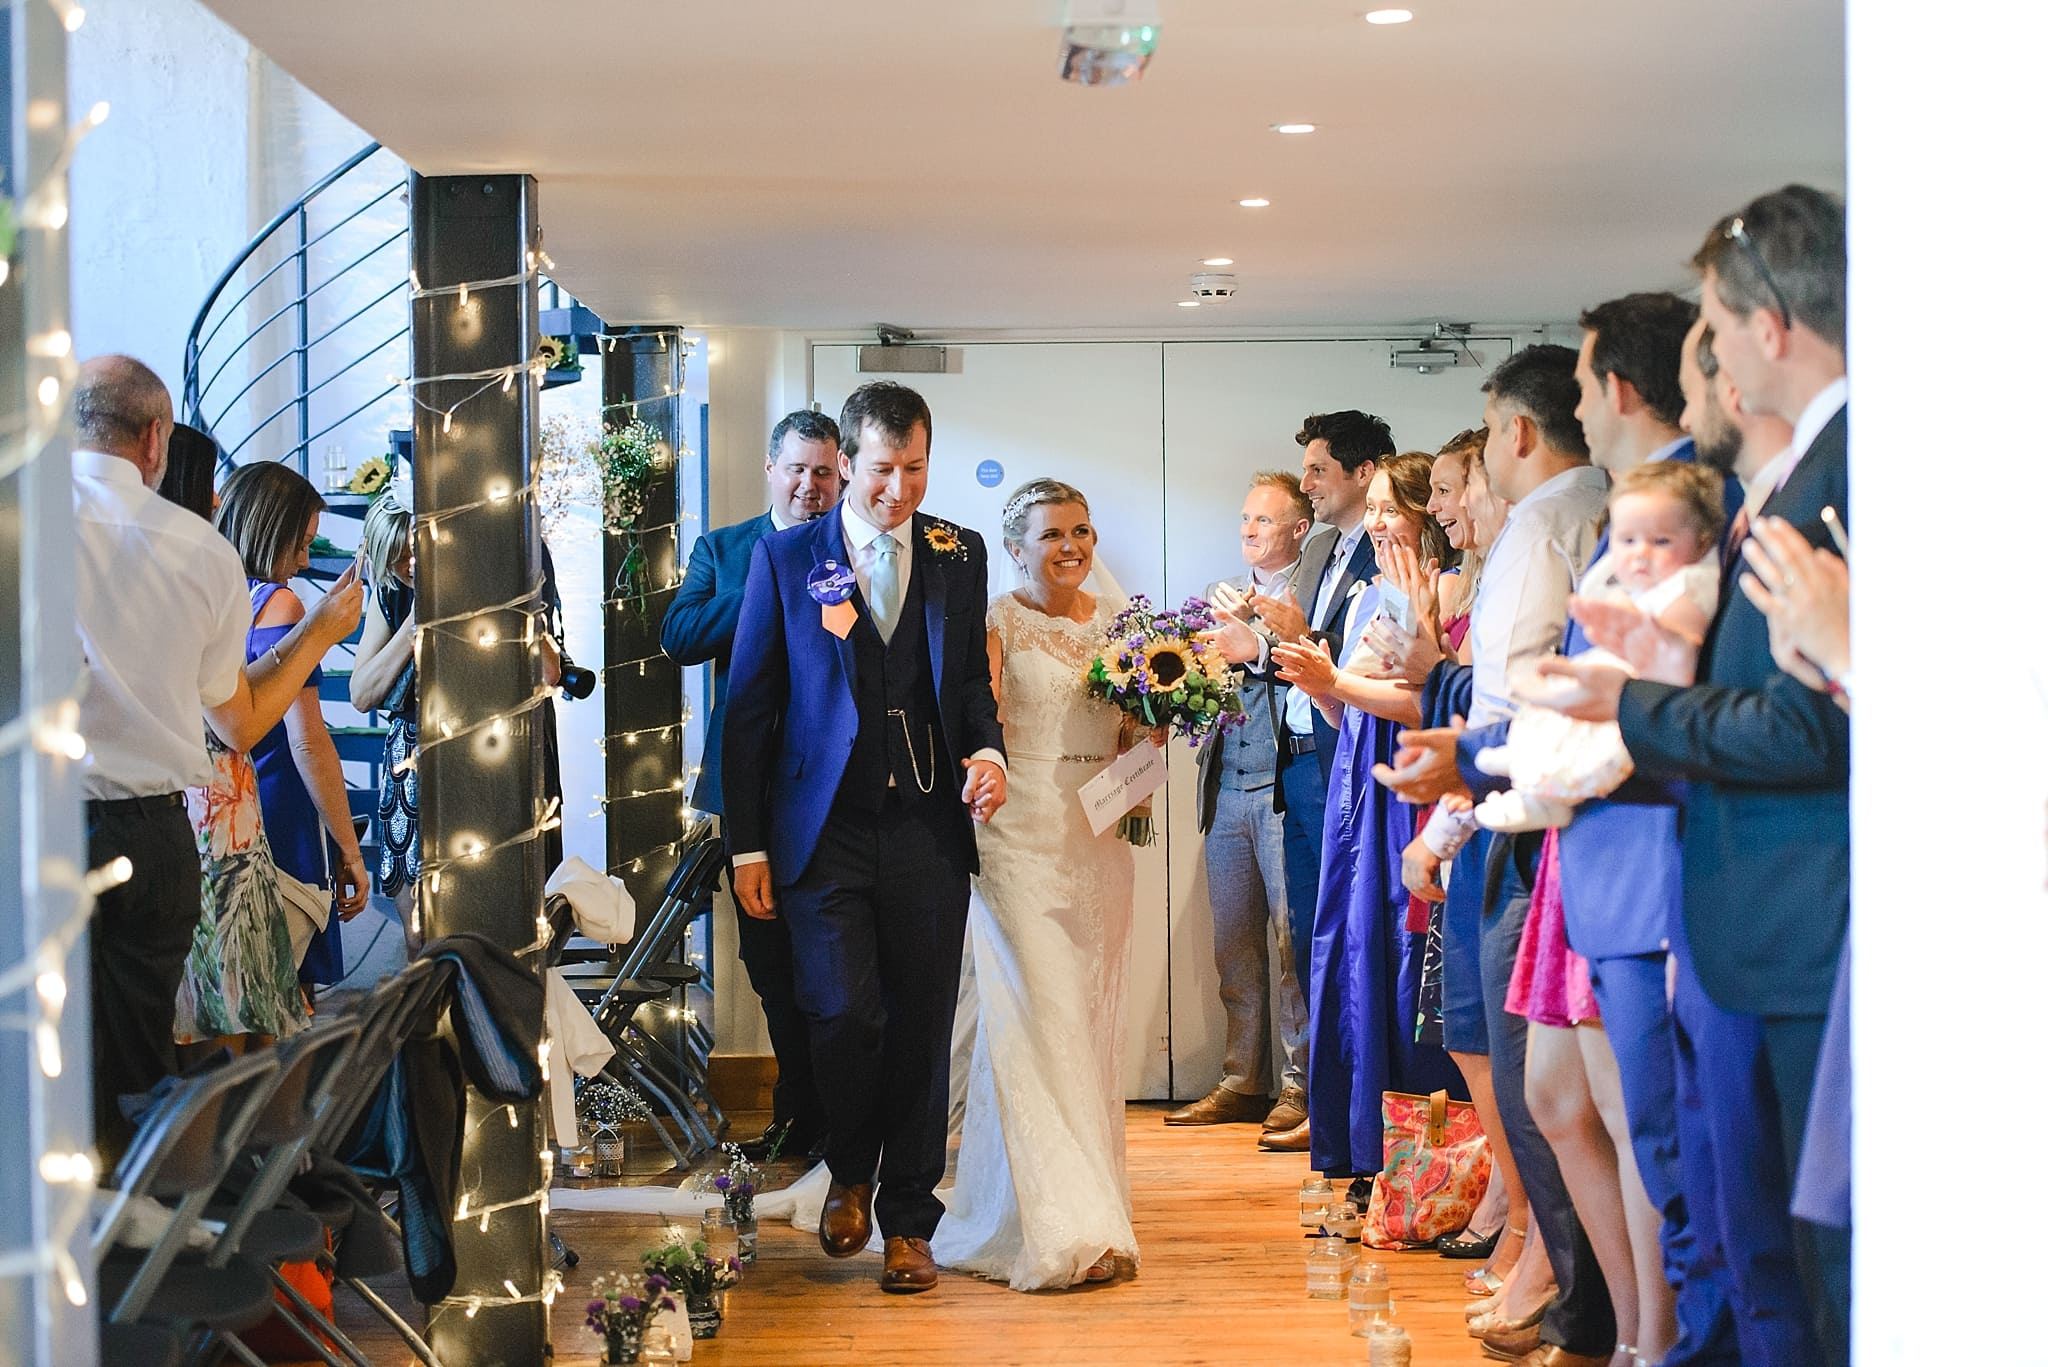 couple walk past their guests at the end of the ceremony at the Paintwork's